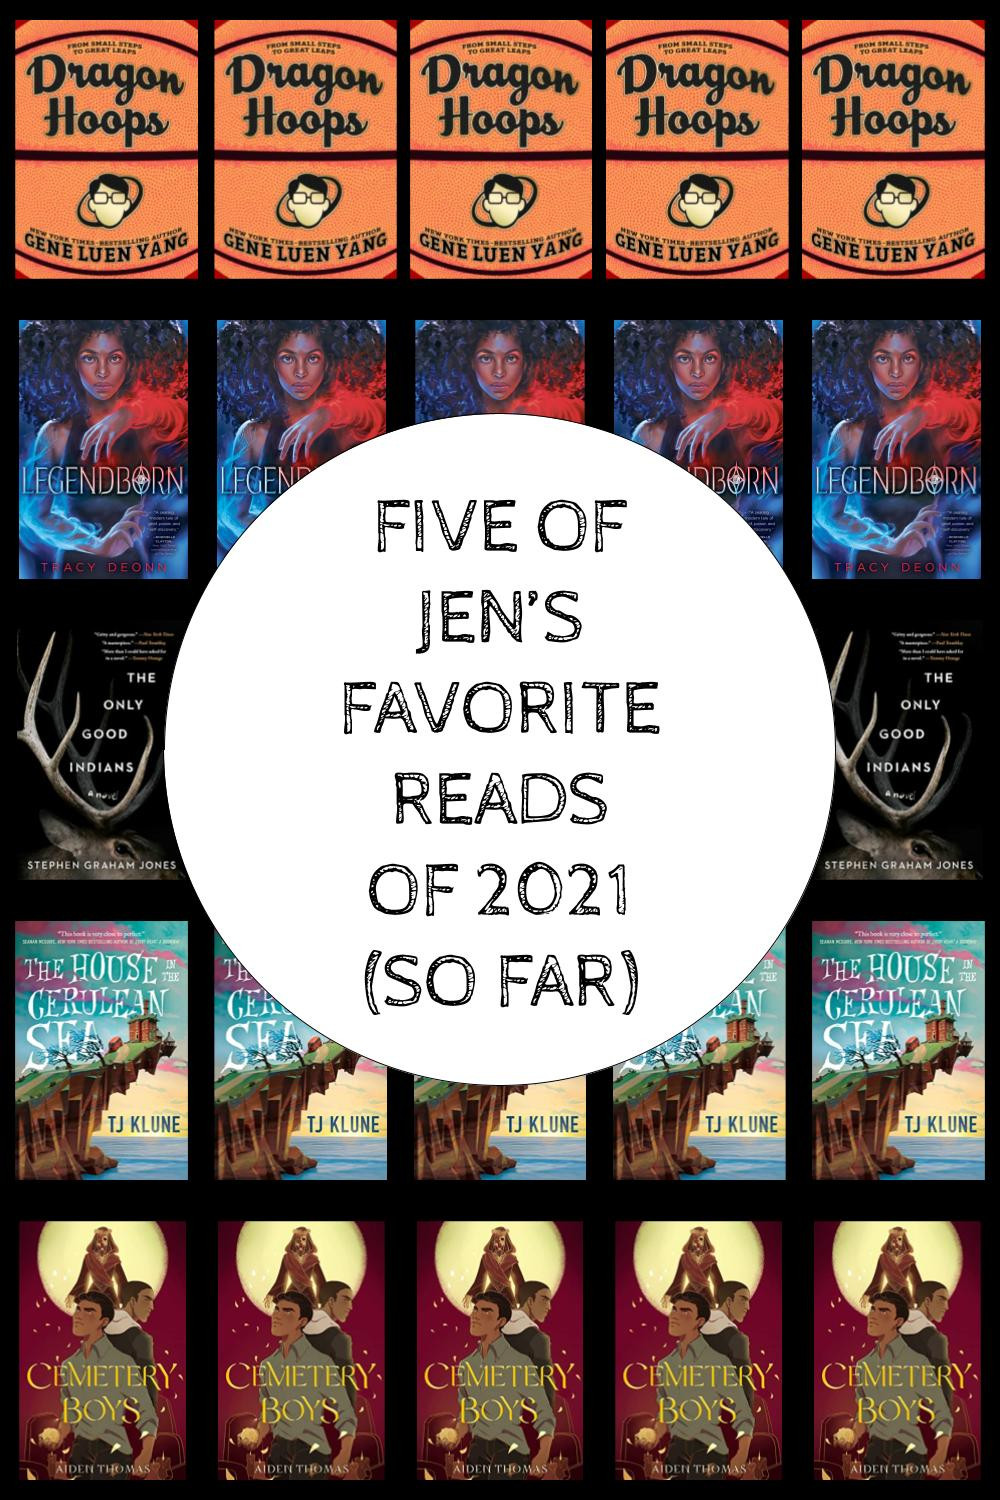 Graphic with Book Covers of the 5 chosen books and text Five of Jen's Favorite Reads of 2021 (so far)